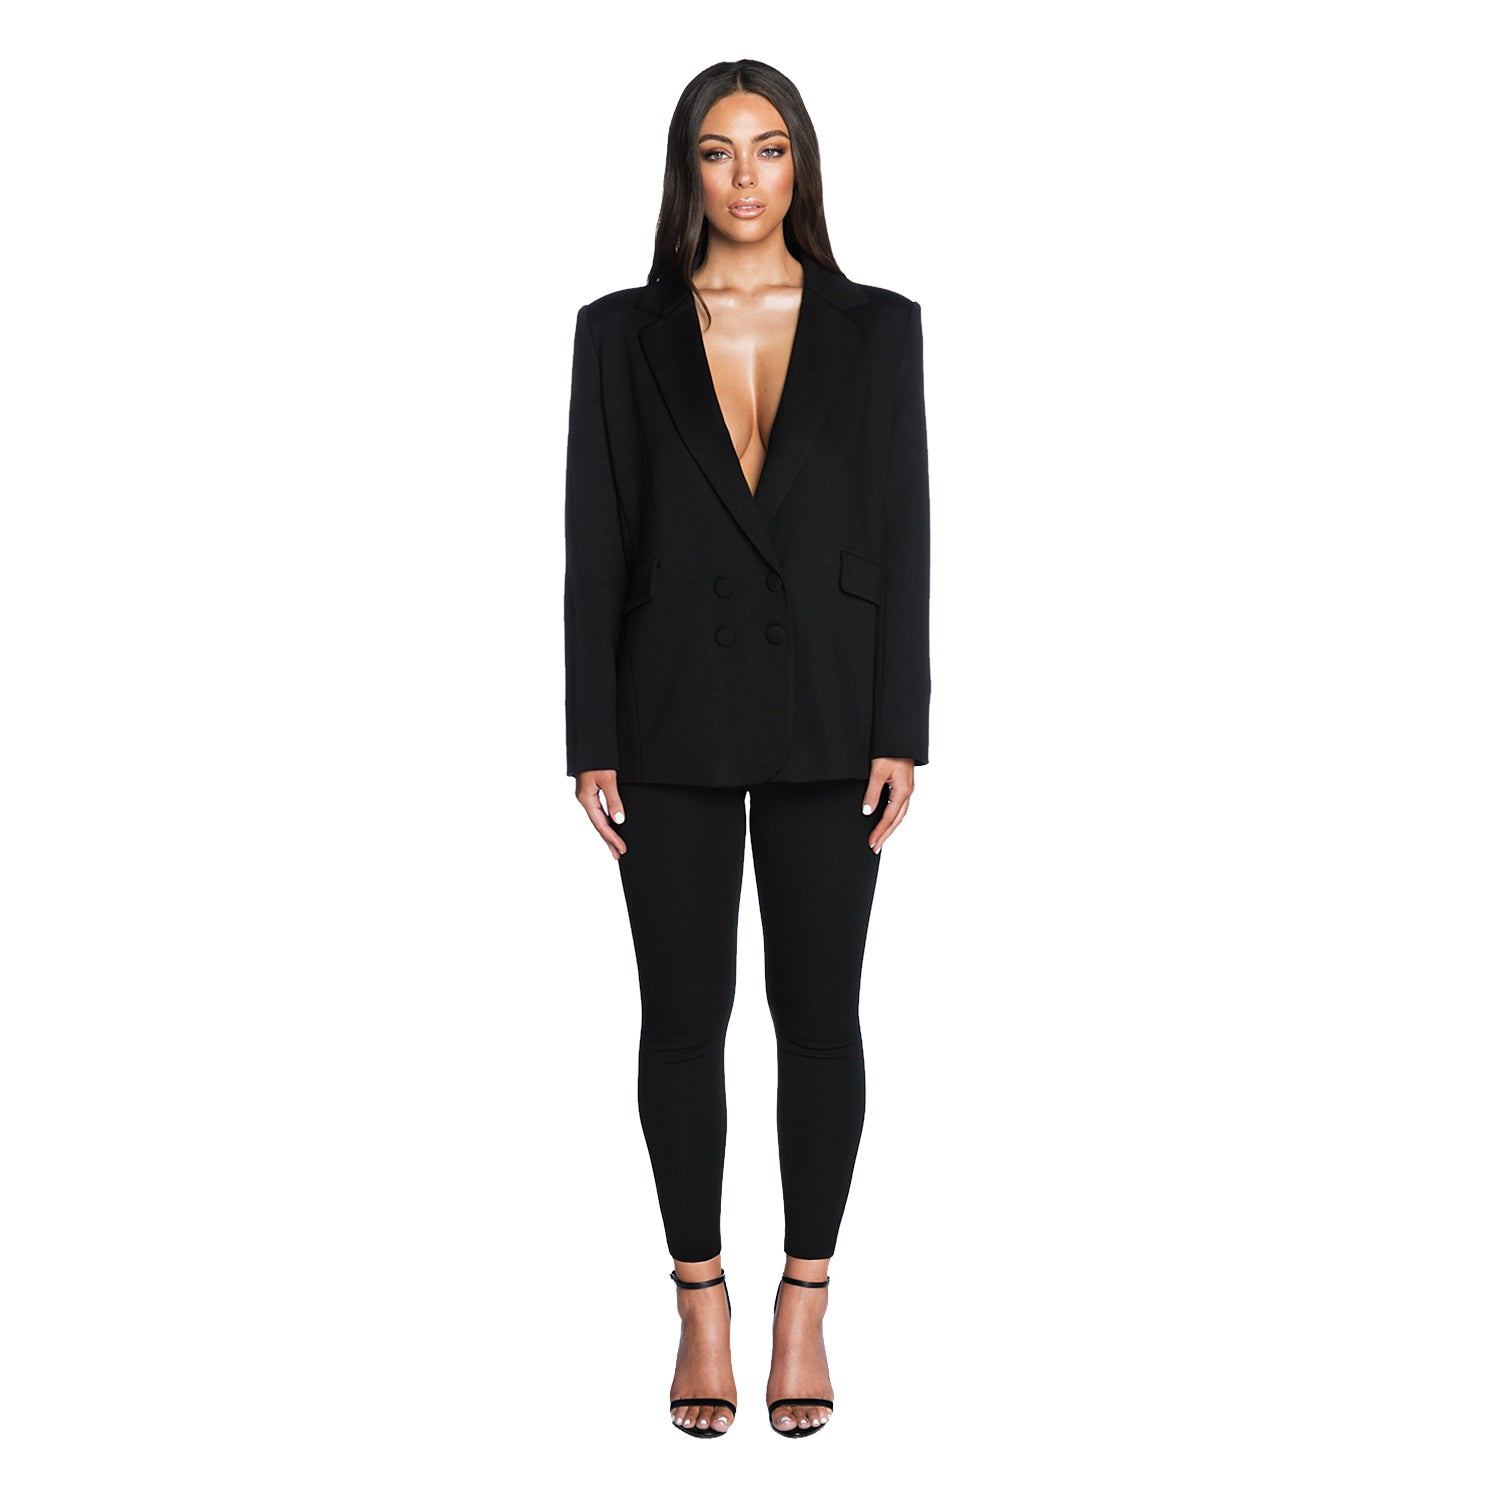 The Birthday Suit Blazer (Black)